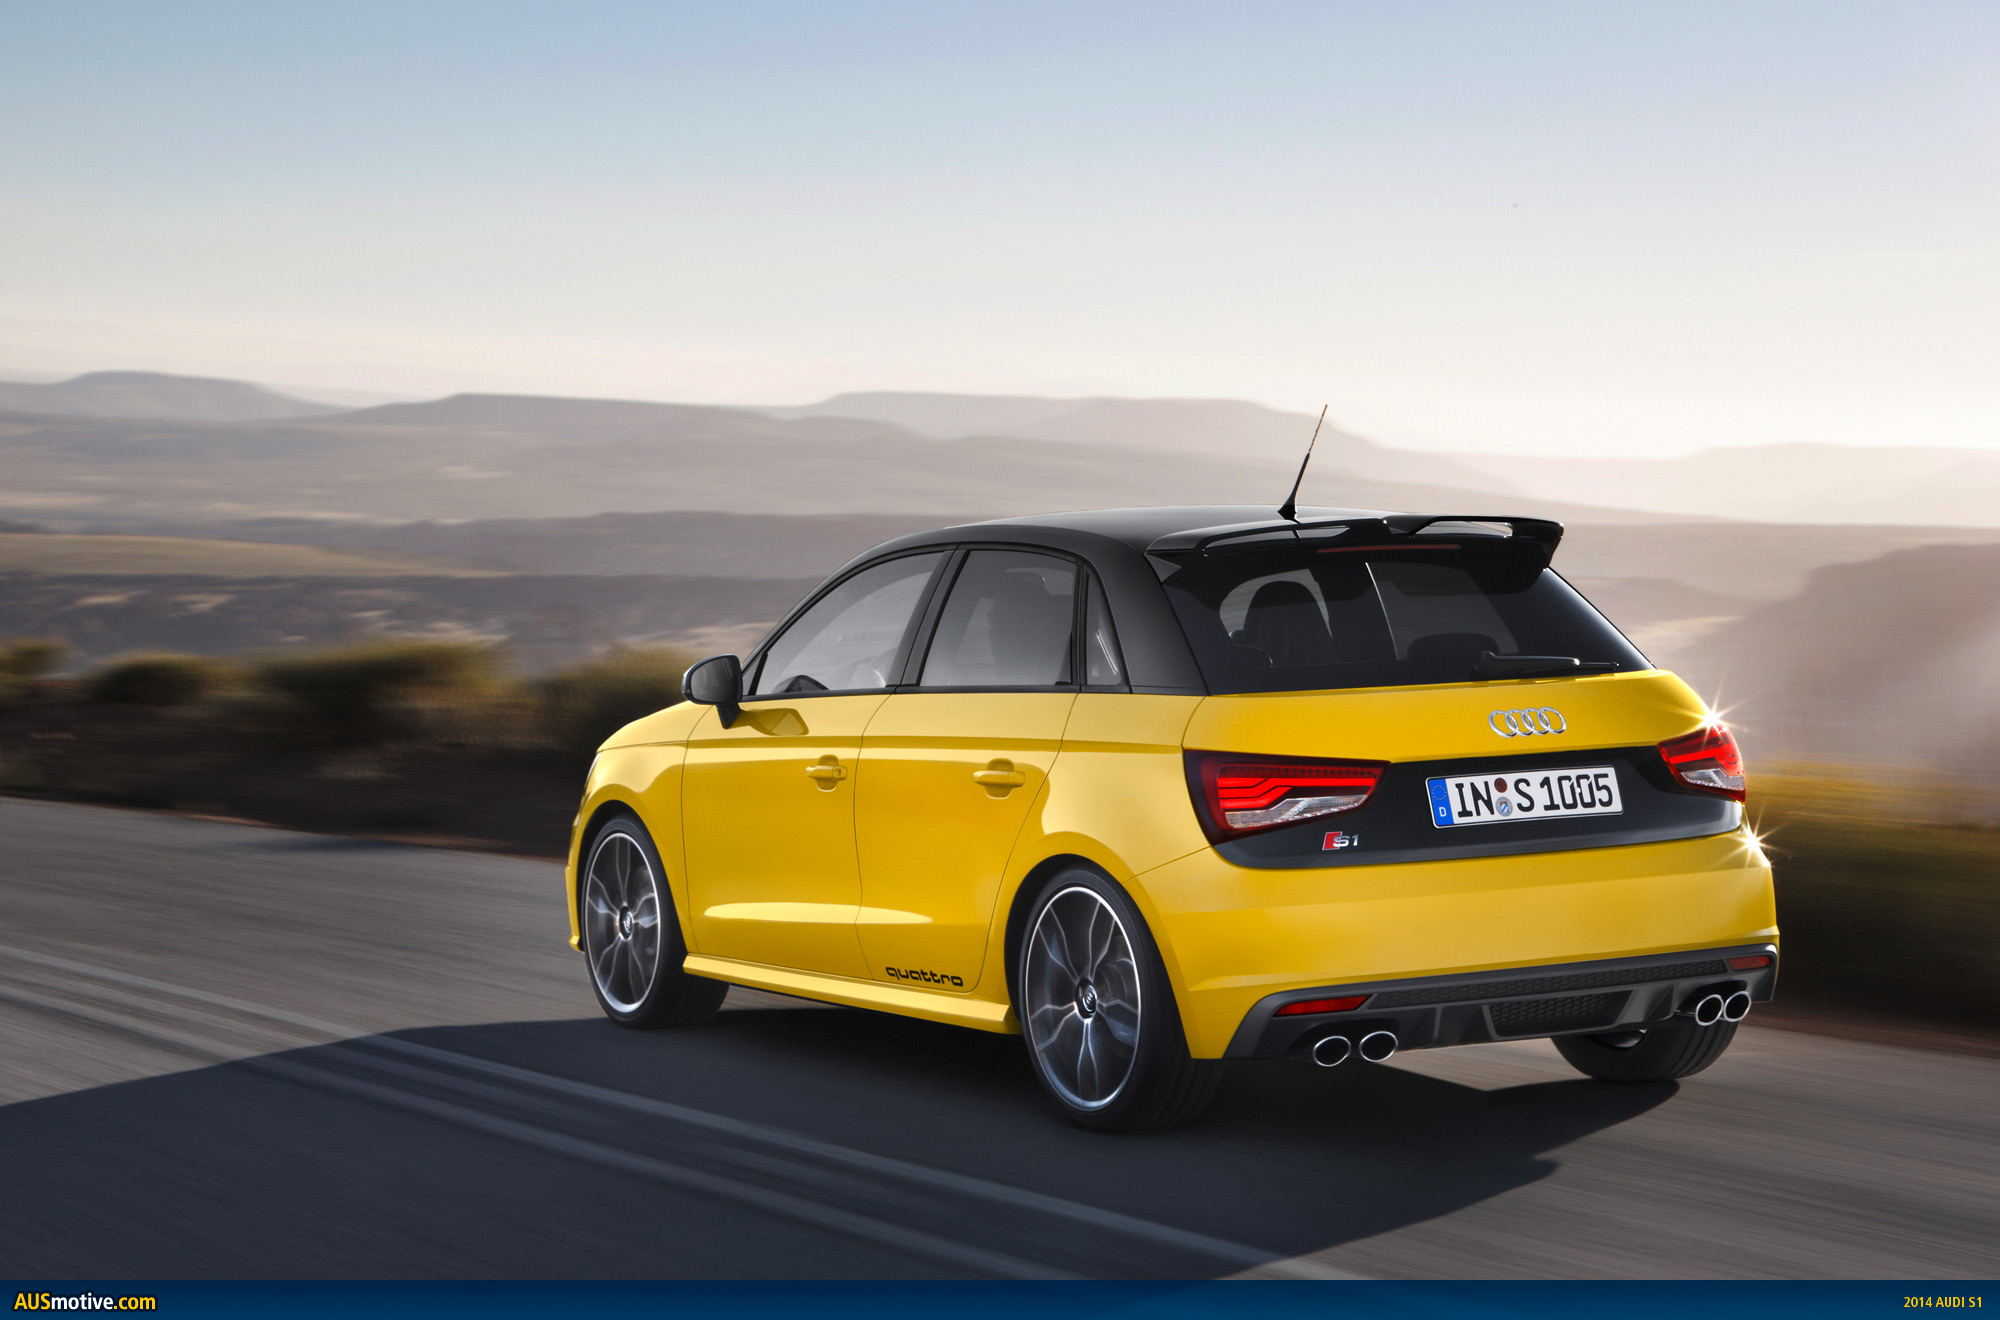 Audi A1 New Model >> AUSmotive.com » Audi S1 & S1 Sportback revealed